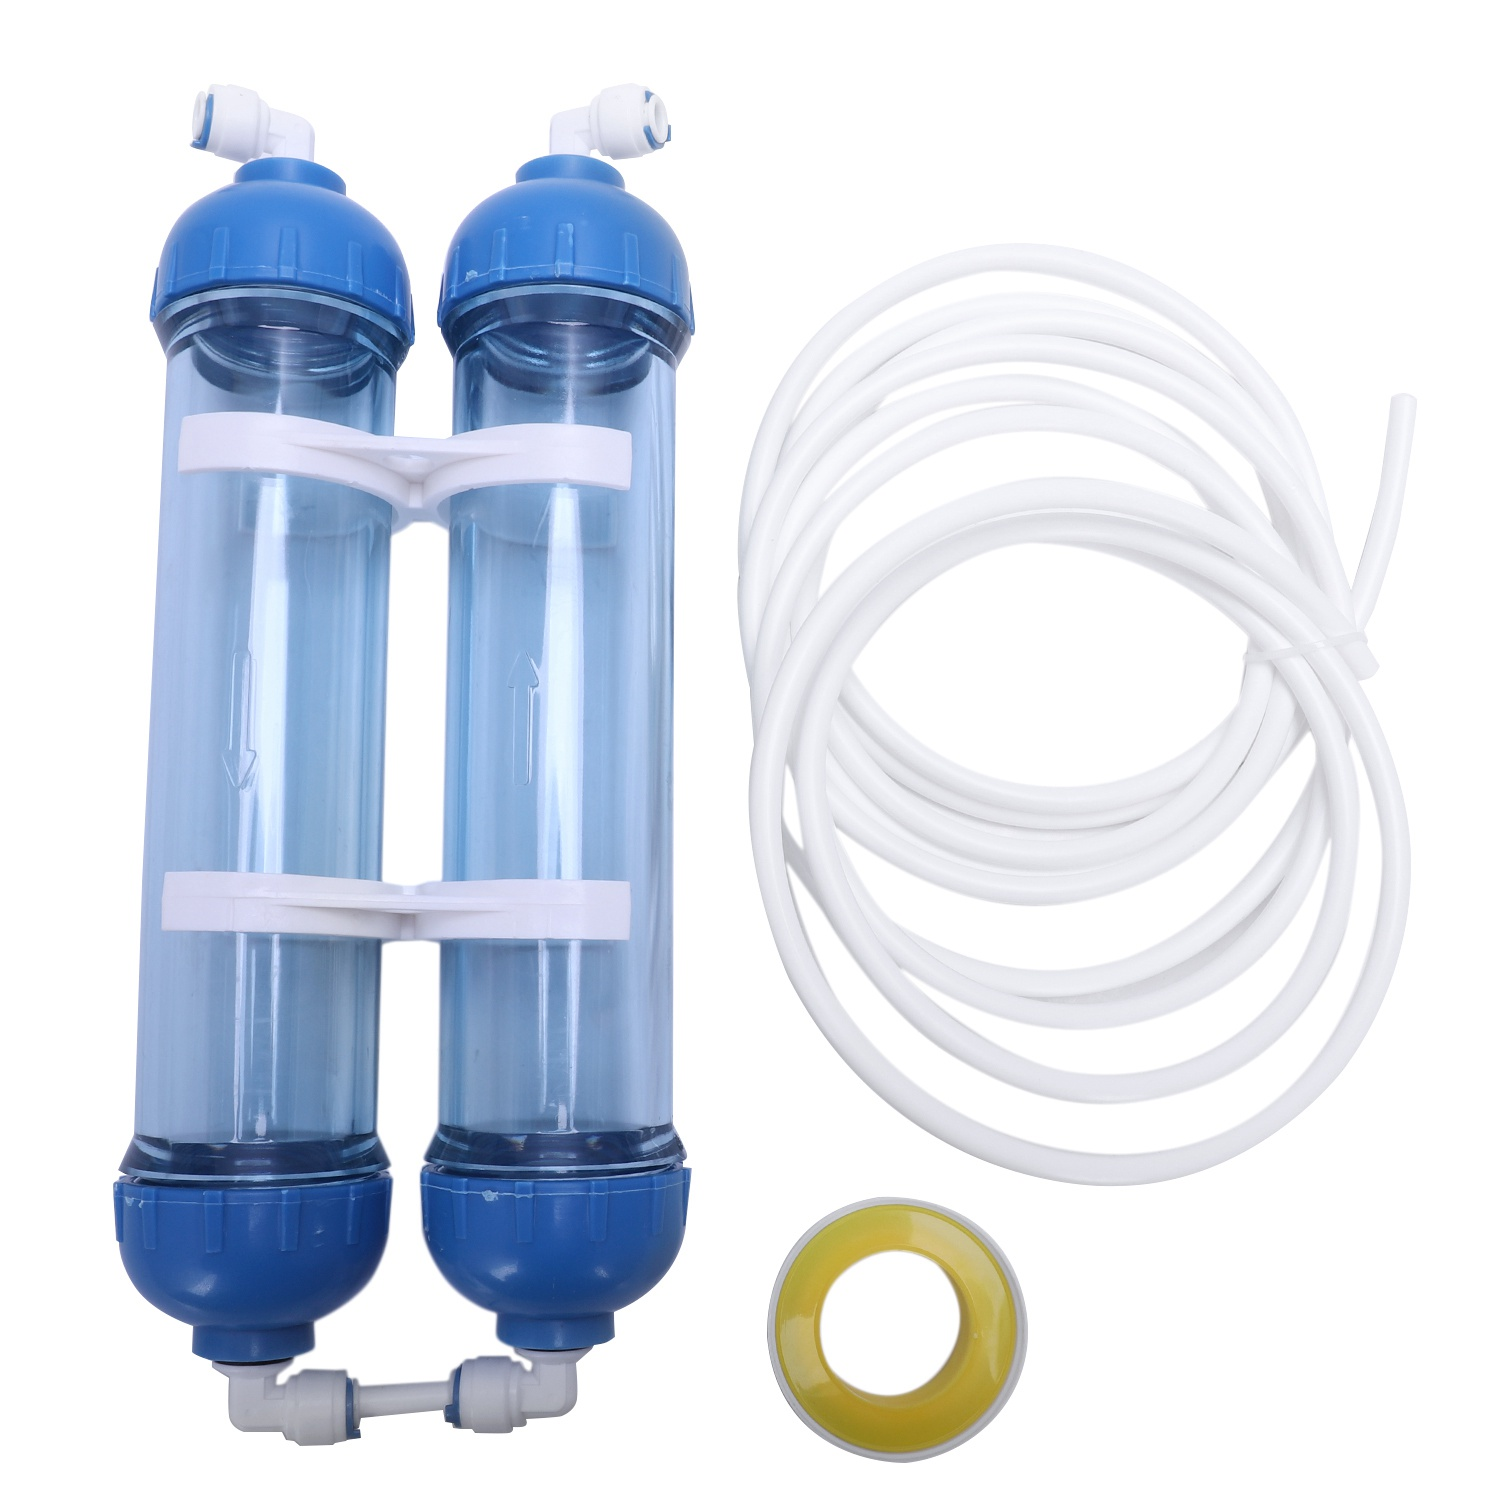 Water Filter 2Pcs T33 Cartridge Housing Diy T33 Shell Filter Bottle 4Pcs Fittings Water Purifier For Reverse Osmosis Syst